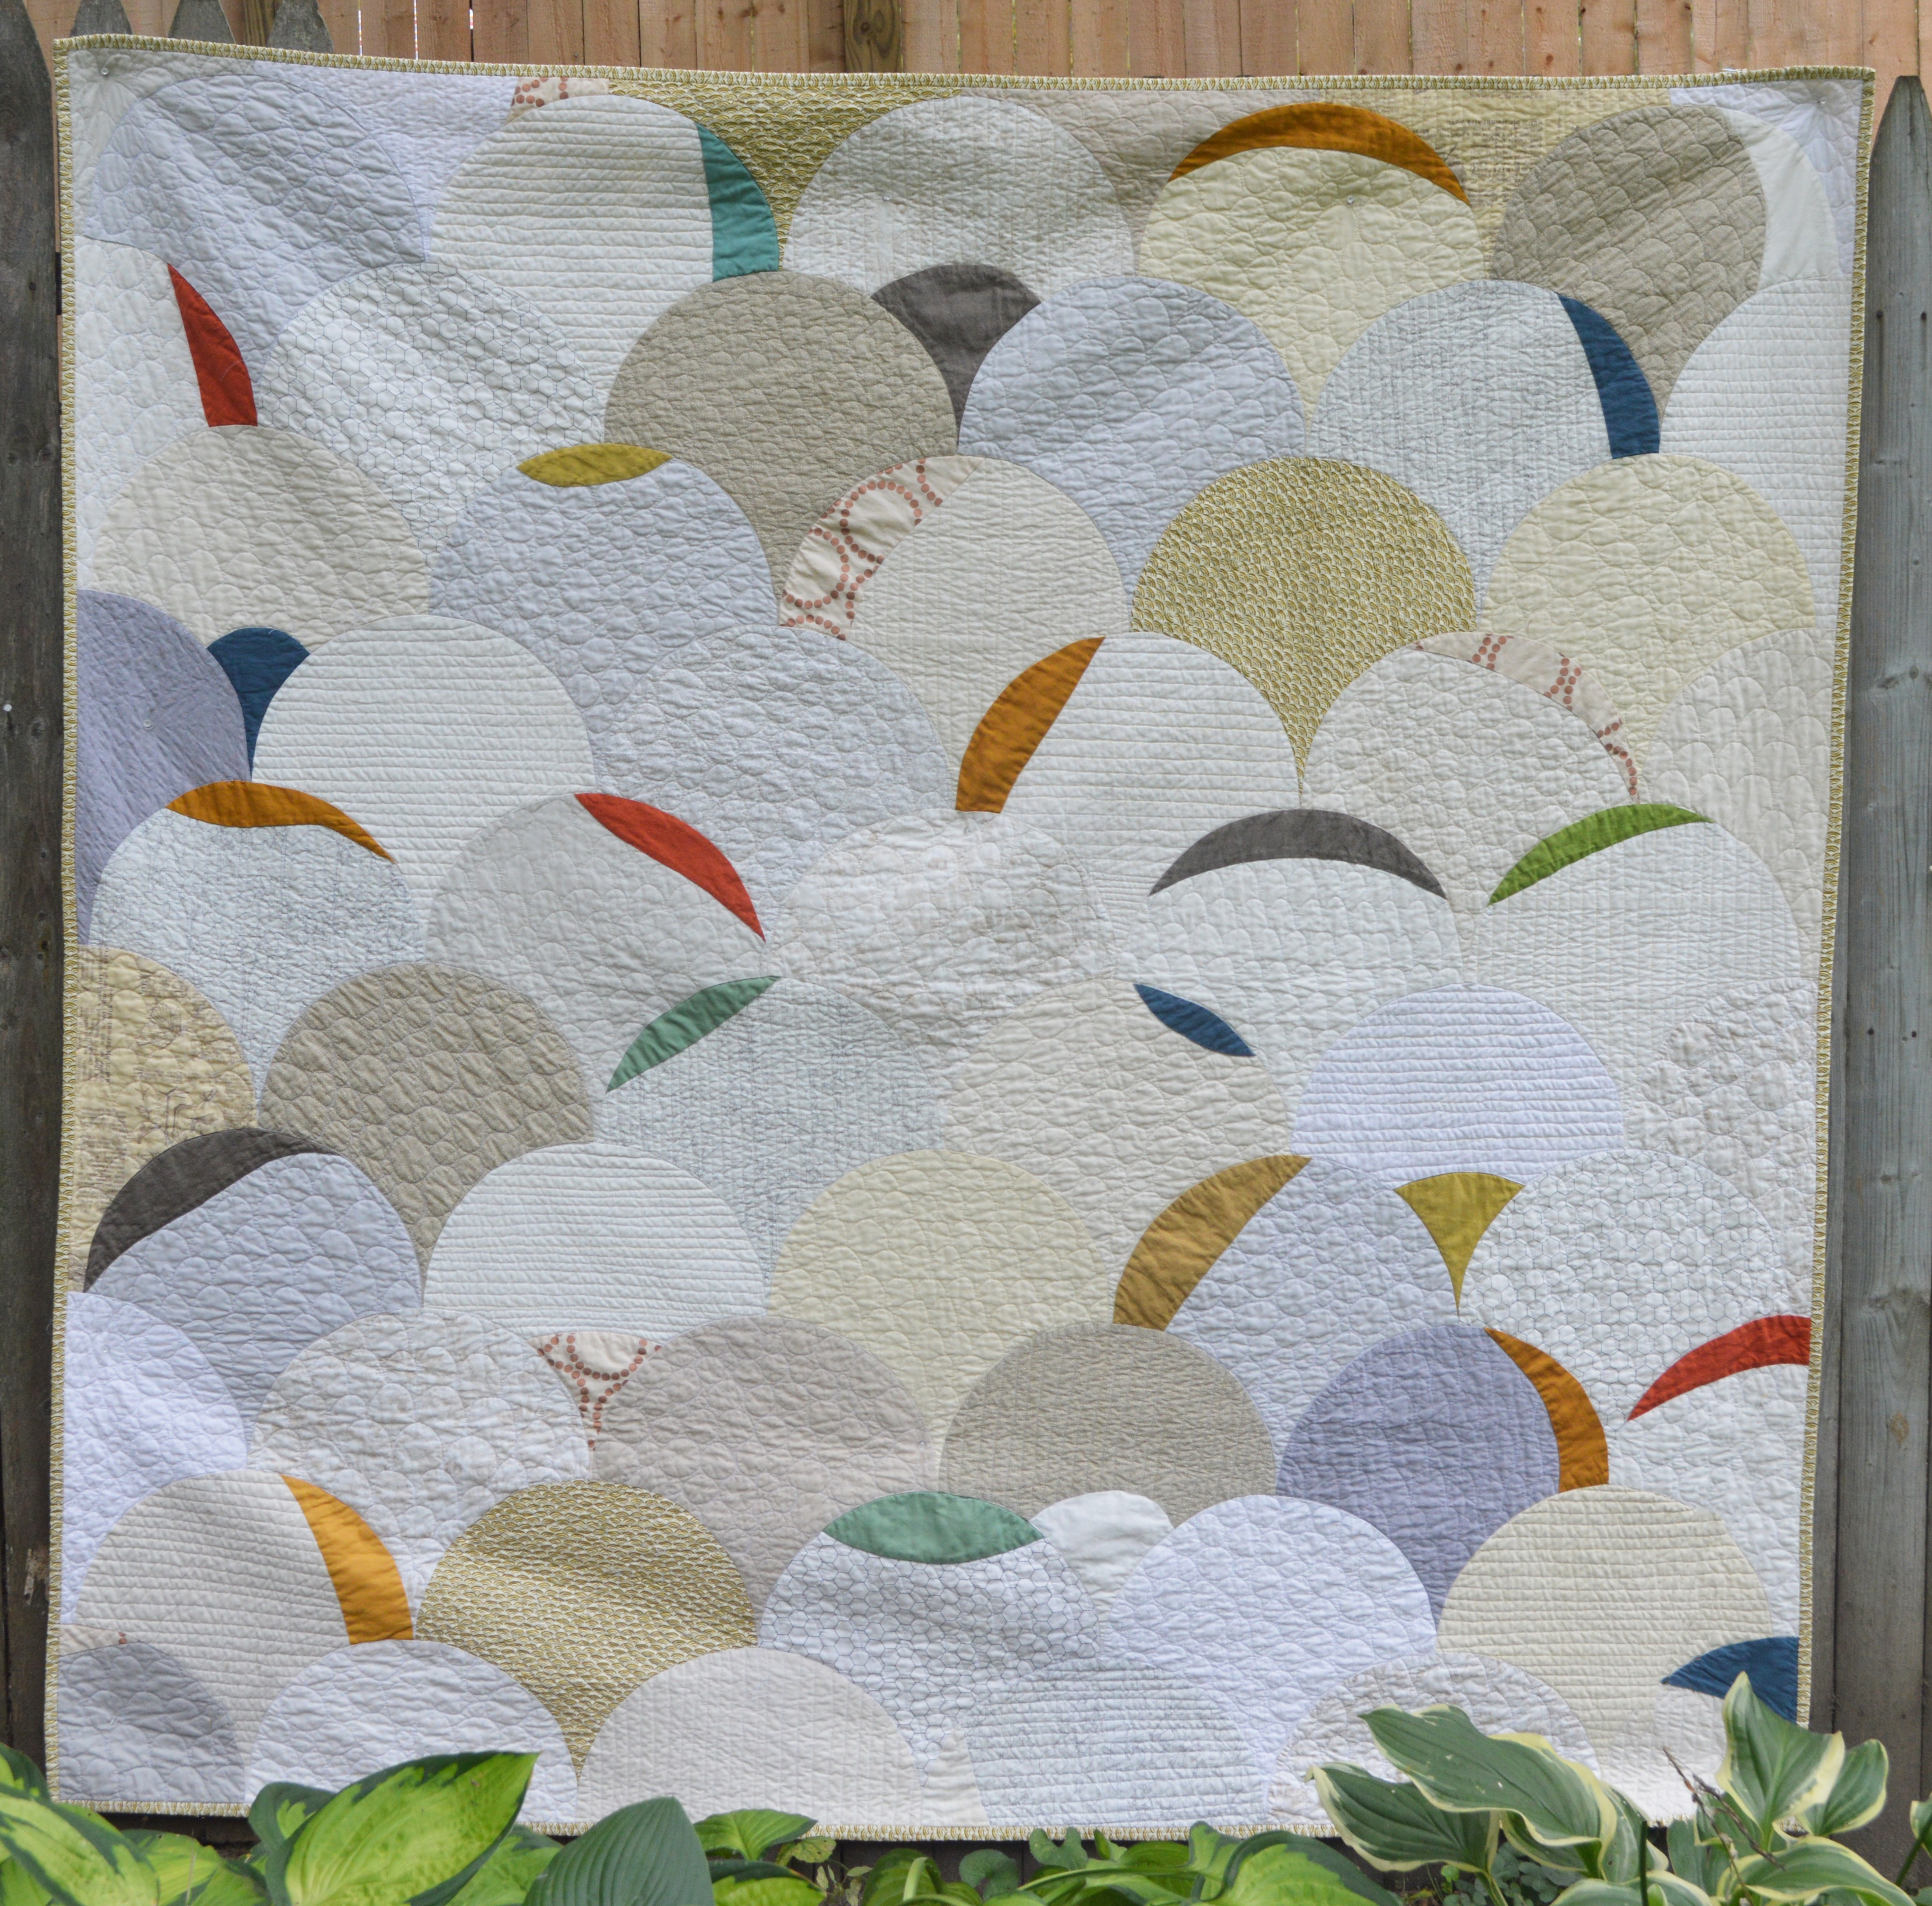 quilt andicraftsandicrafts image longarm quilting of types